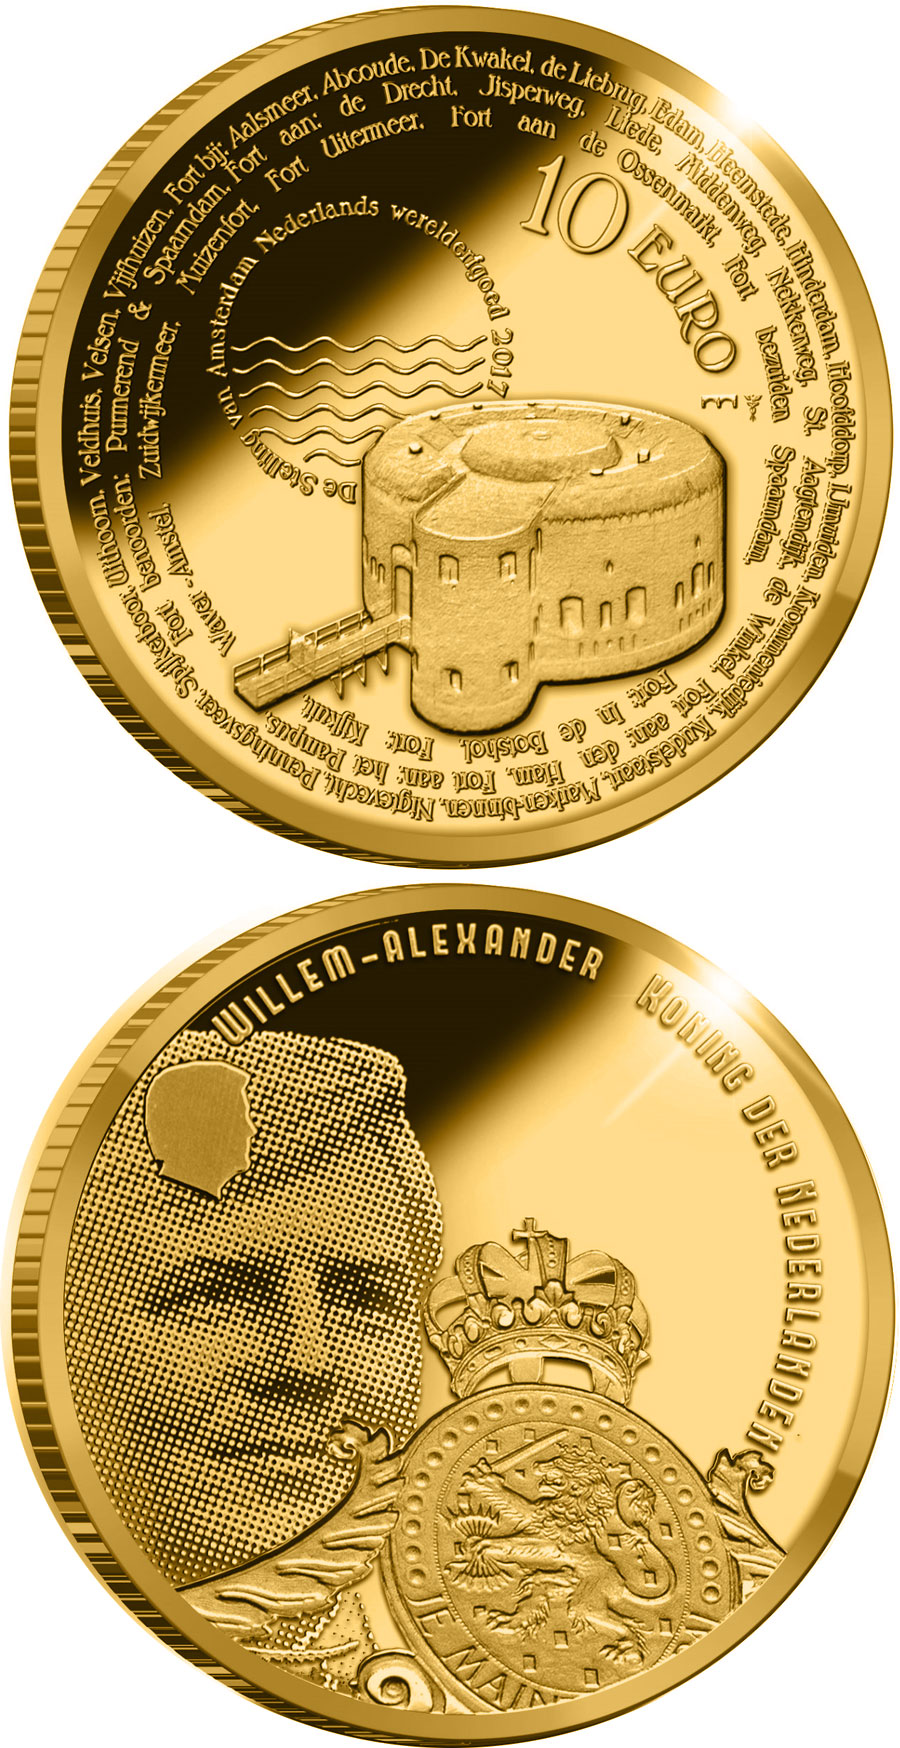 Gold 10 euro coins. The 10 euro coin series from Netherlands